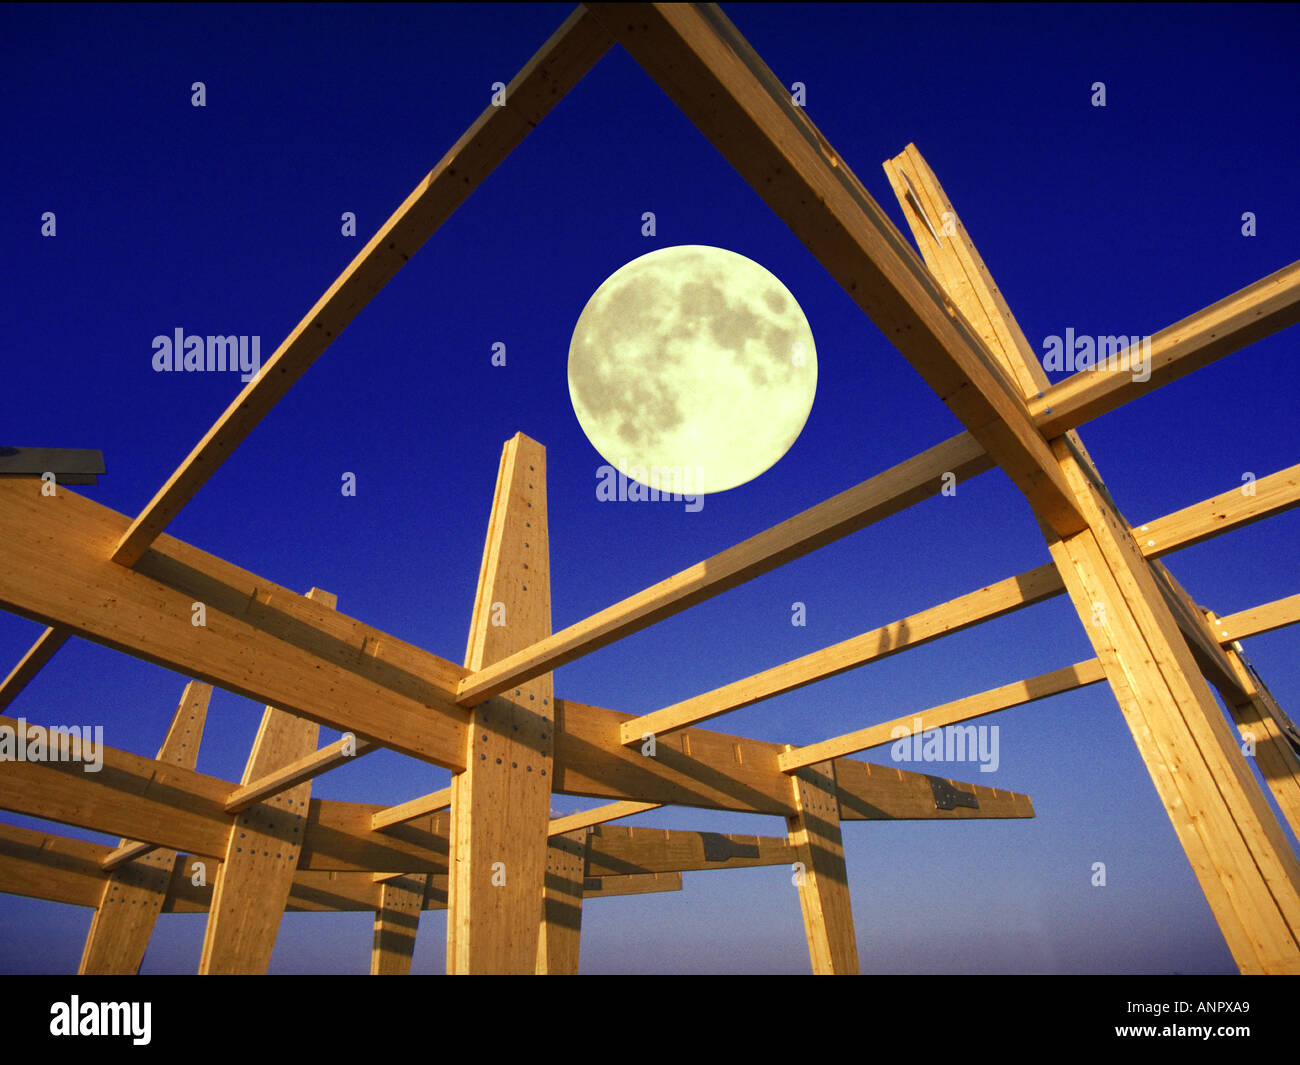 full moon over wood wooden roof construction house building roof truss roof timbers - Stock Image